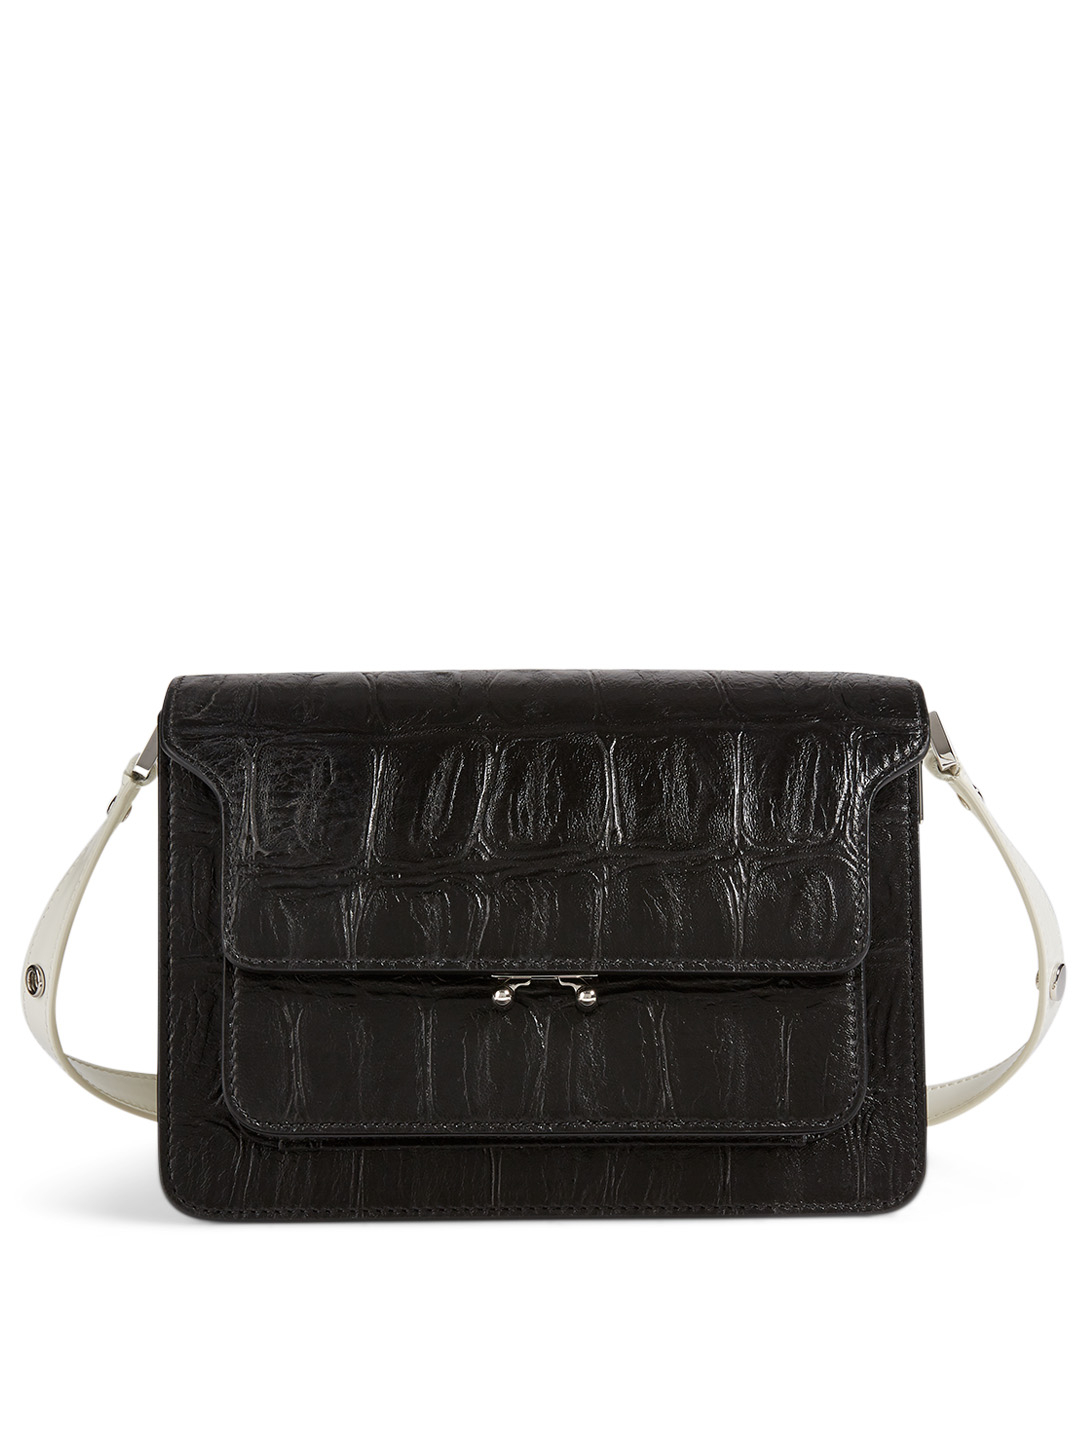 MARNI Trunk Croc-Embossed Leather Bag Women's Black